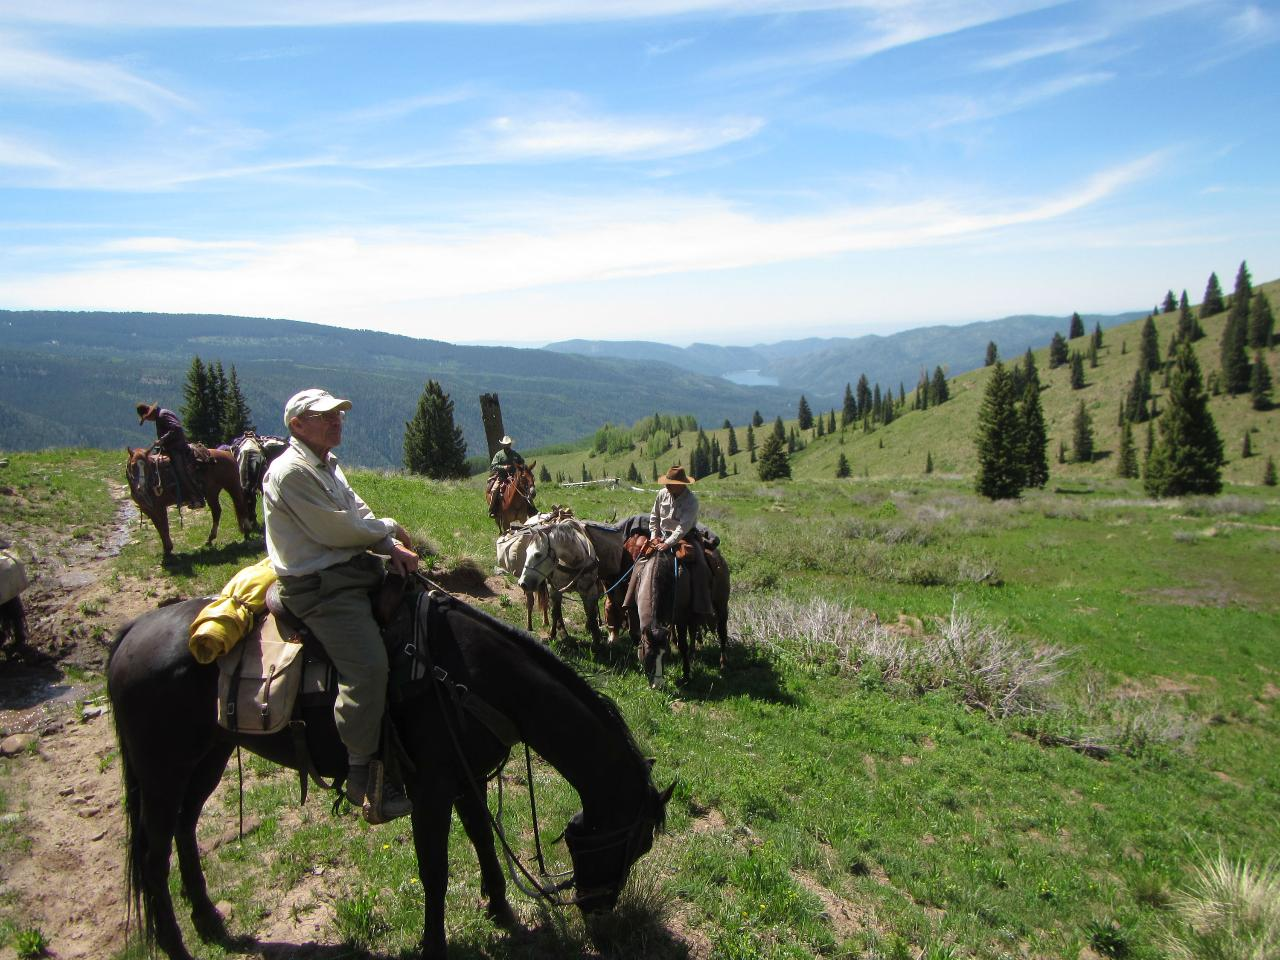 Day Ride in the Weminuche Wilderness: Missionary Ridge